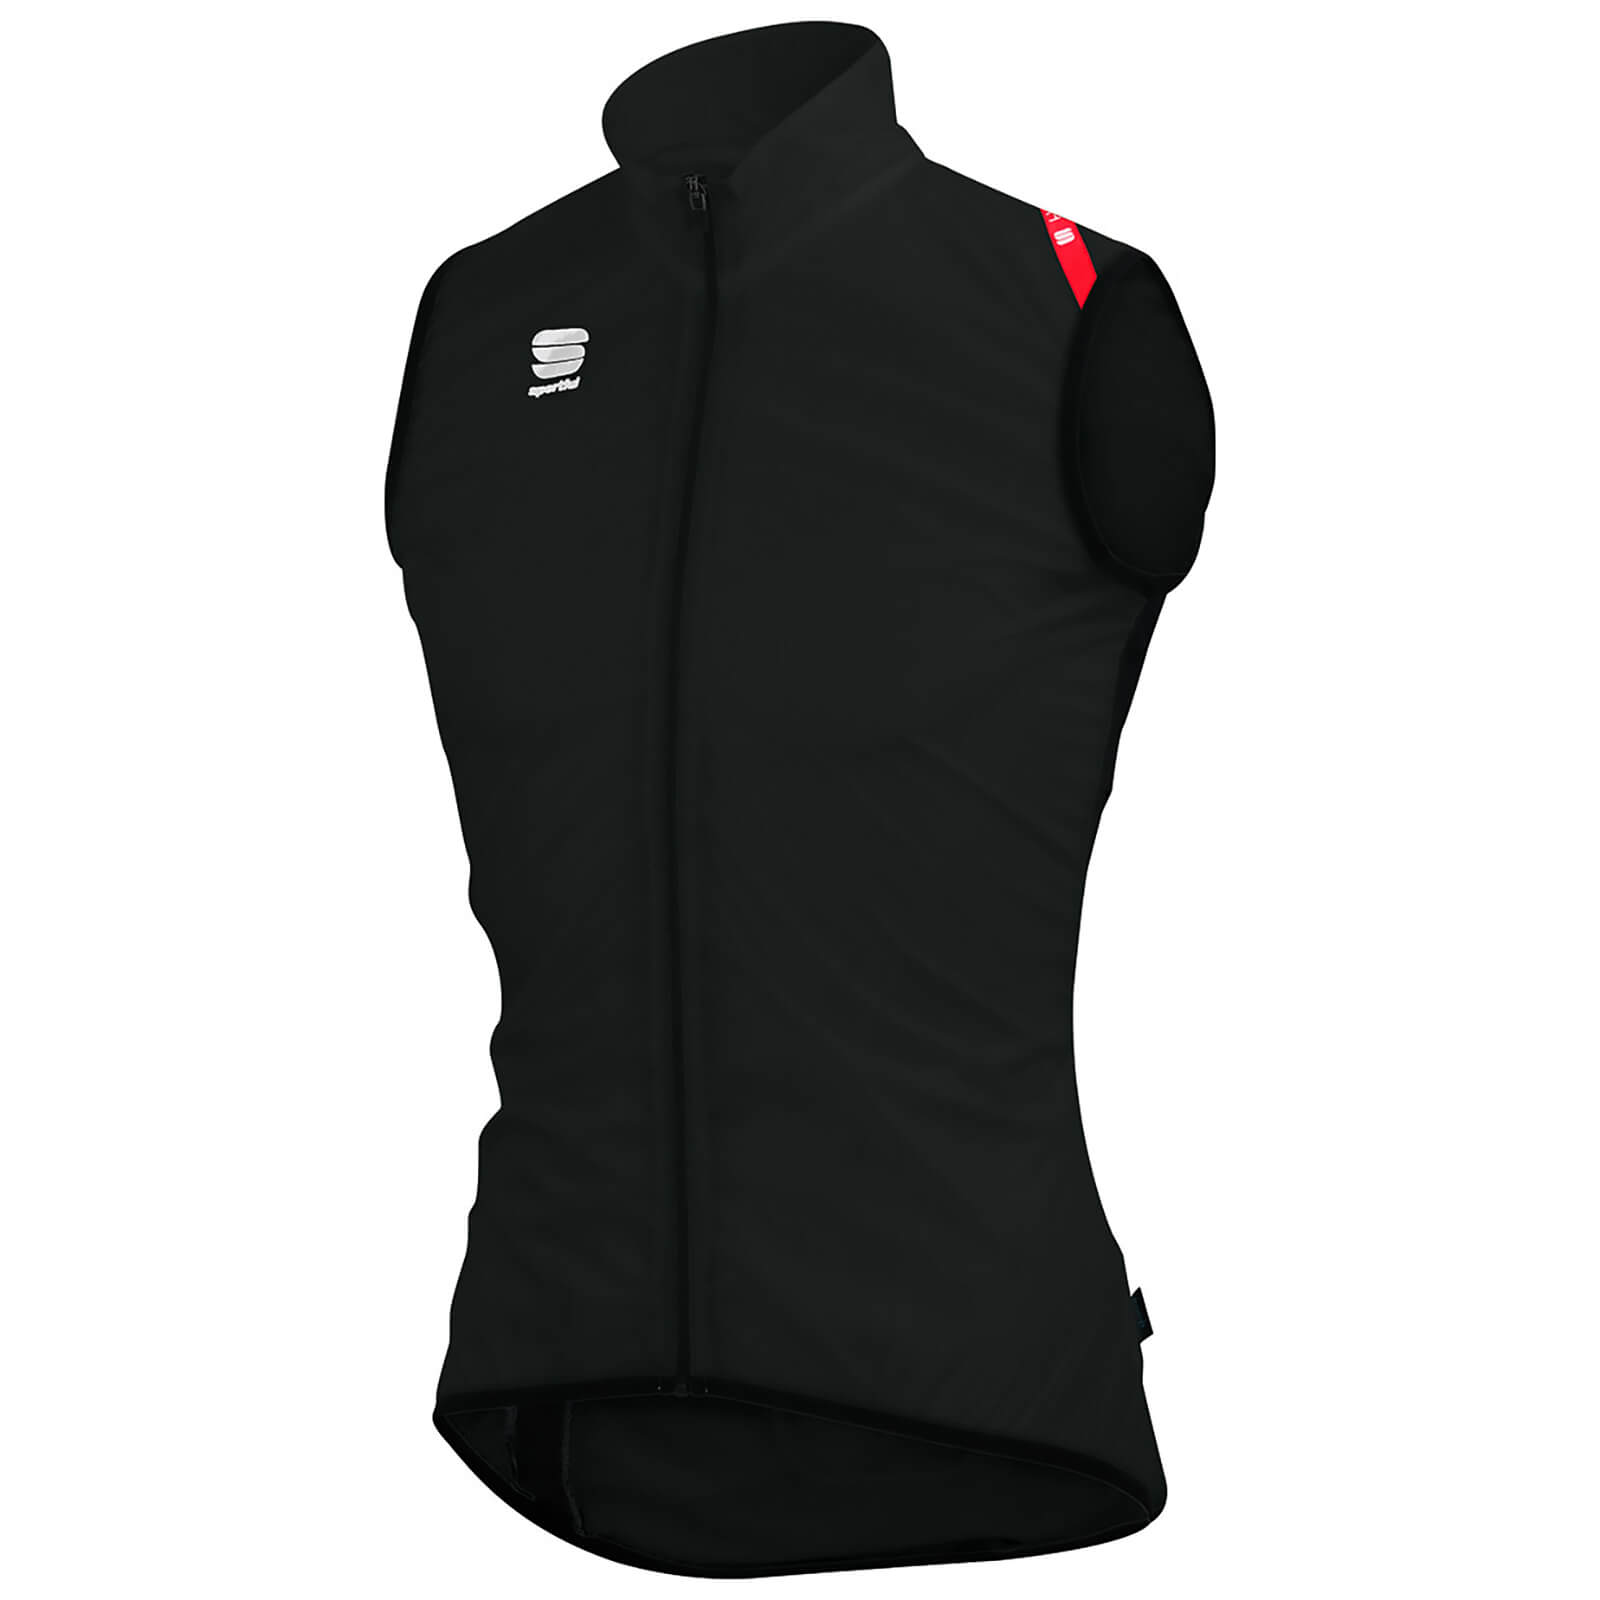 Sportful Hot Pack 5 Gilet - Black